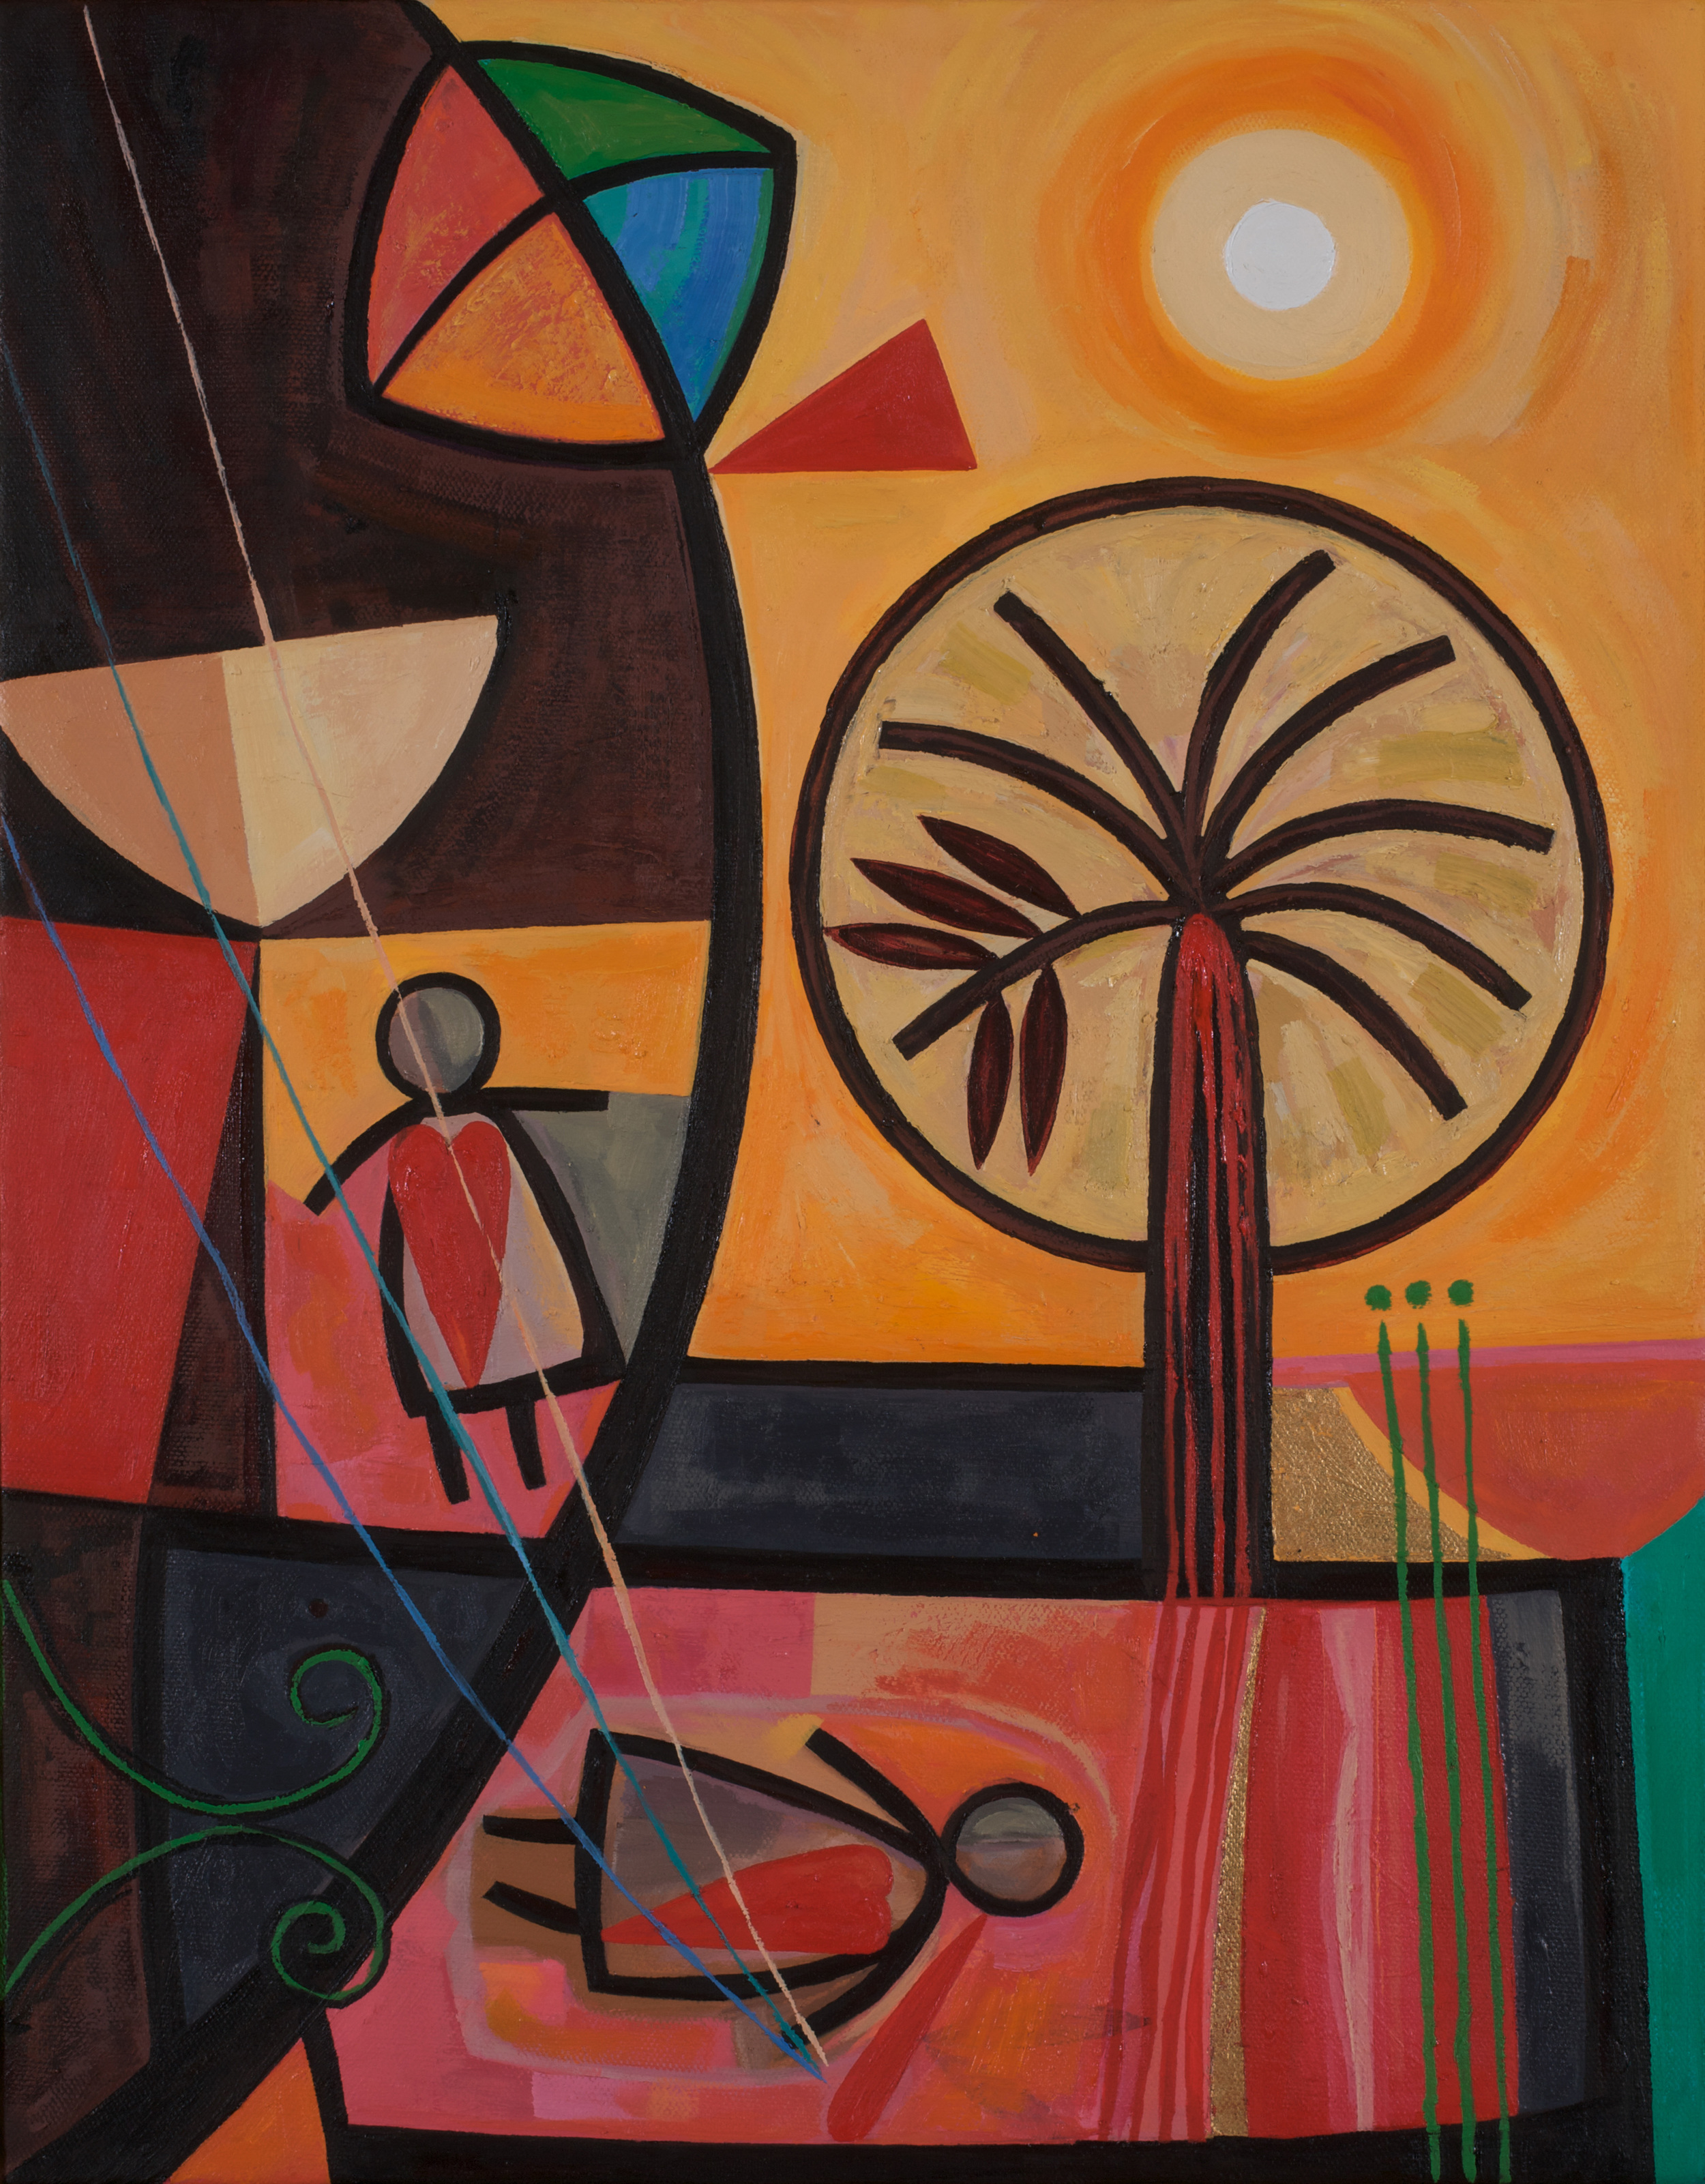 Munira  Kites and Shattered Dreams  Oil on canvas 45x35cm 2008 Breish Collection UK